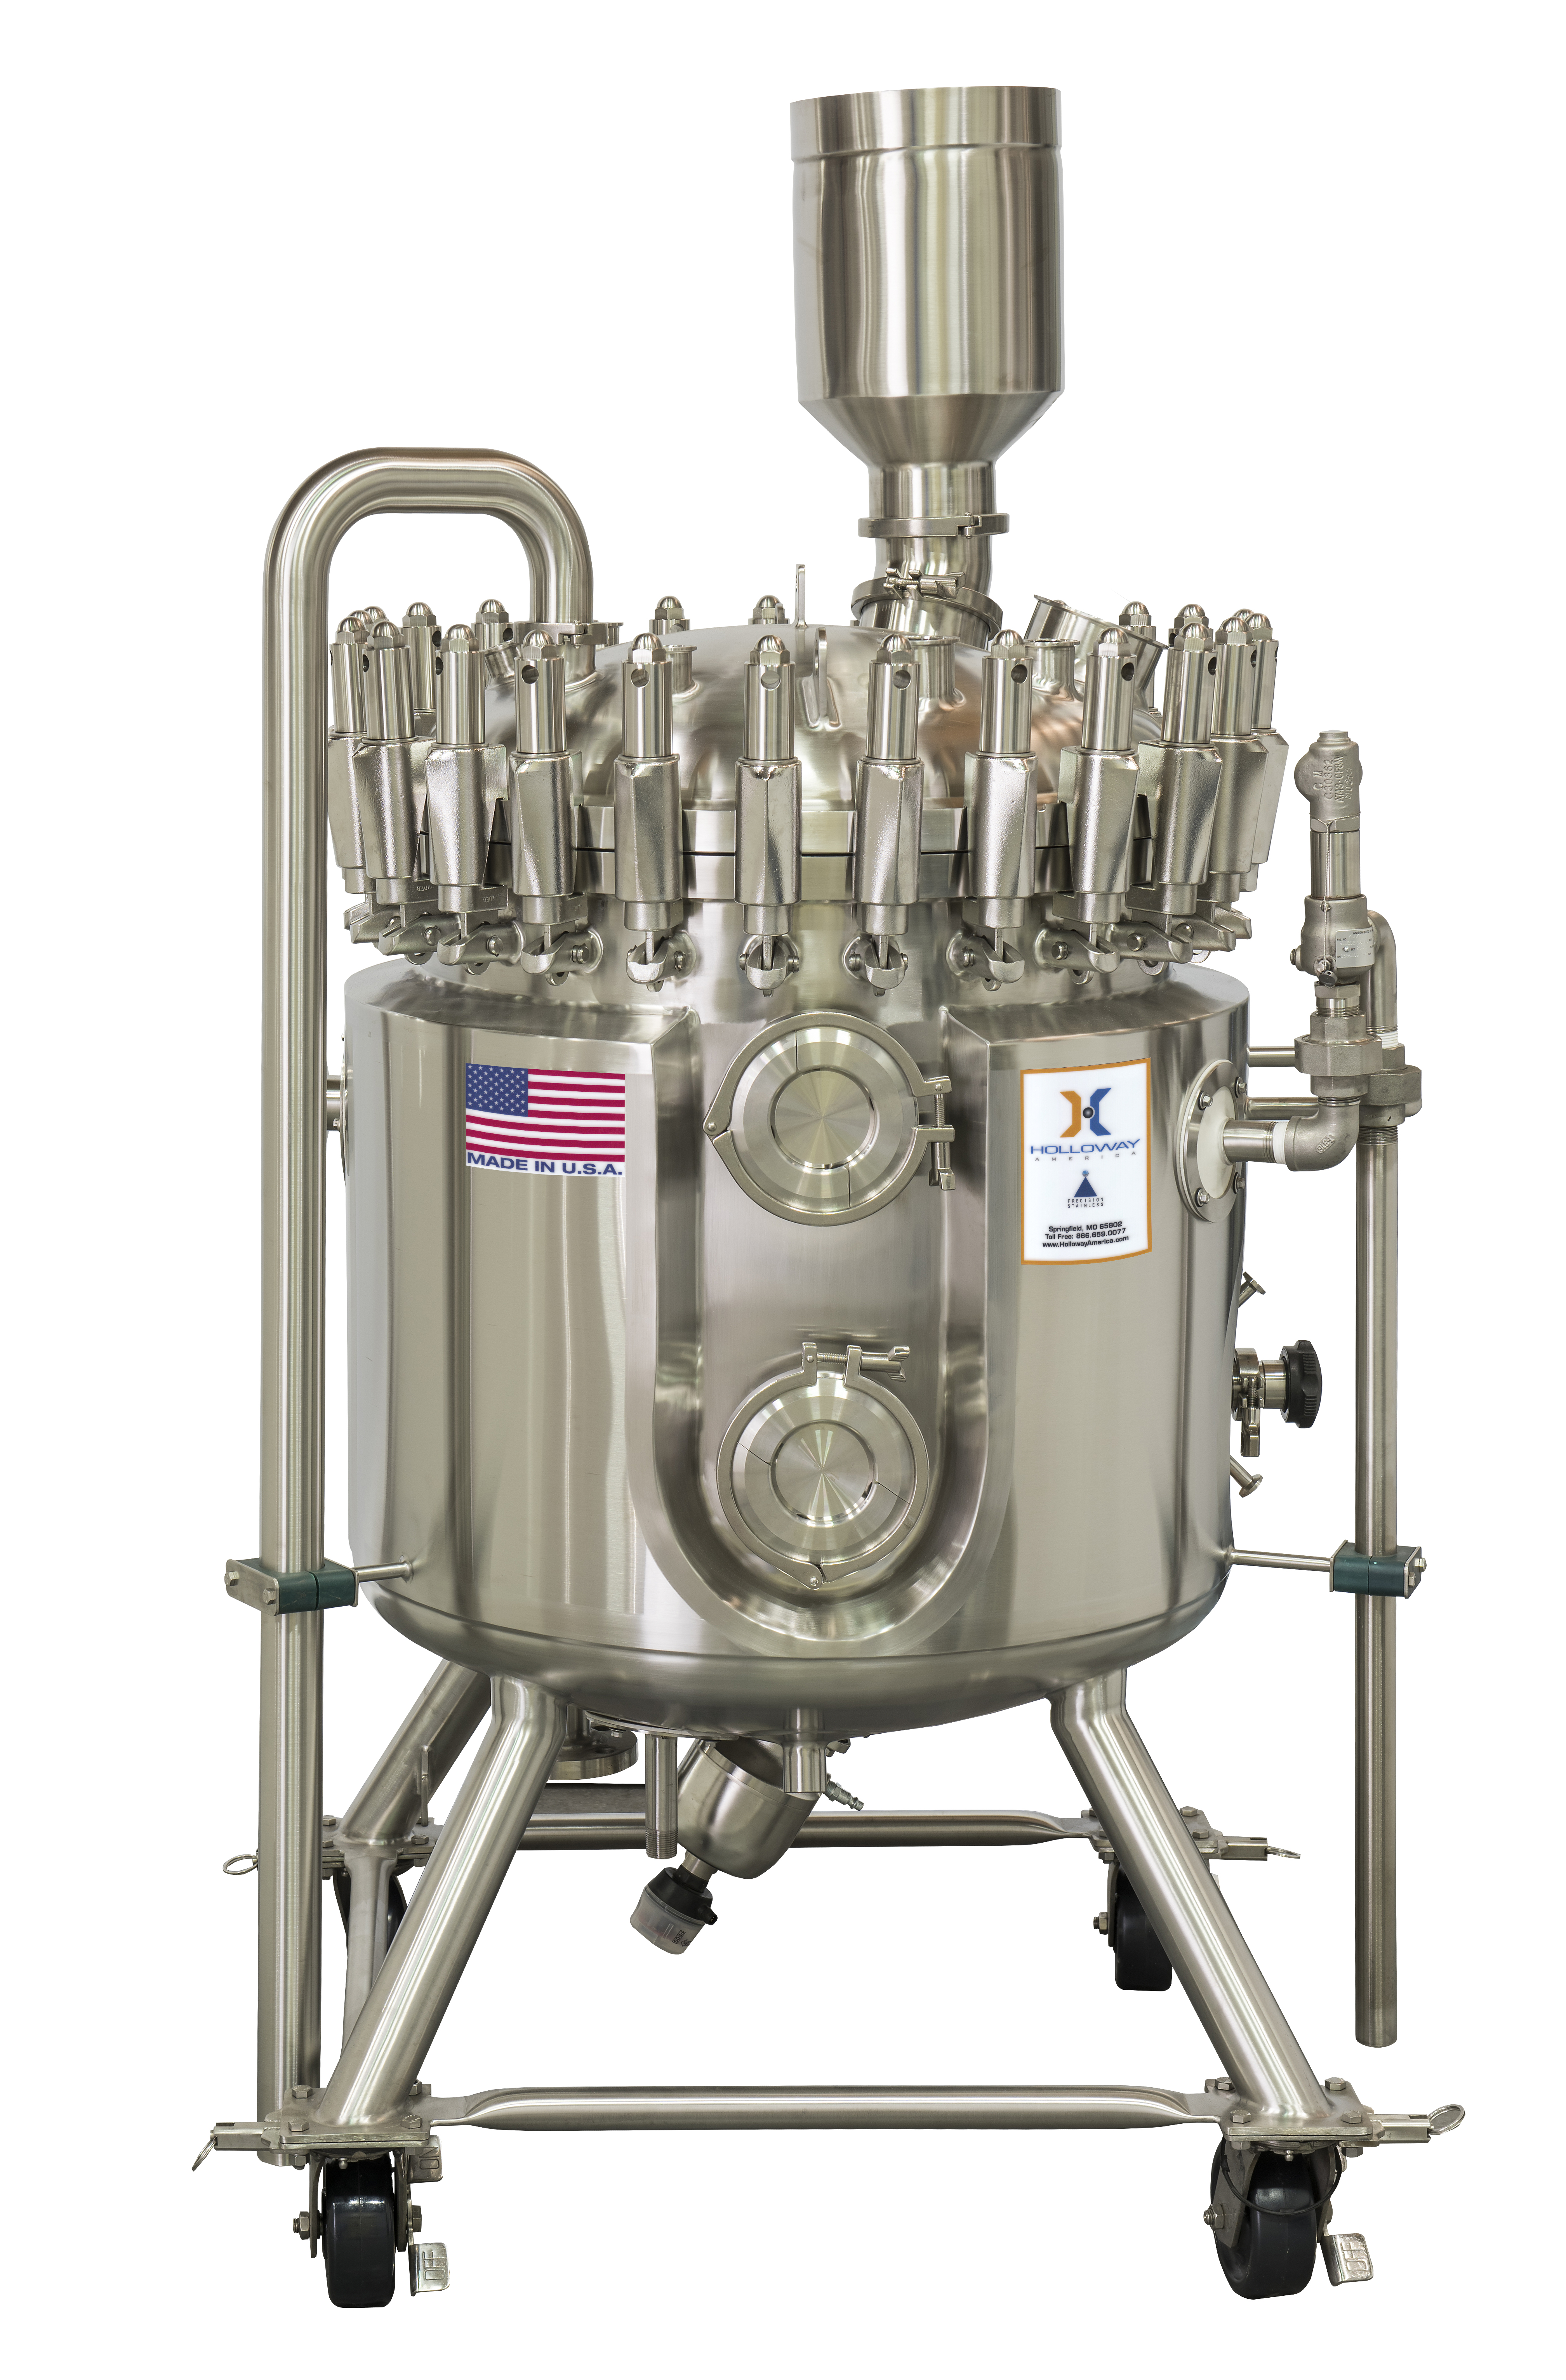 Holloway builds portable pressure vessels like this vertical vessel for the laboratory.